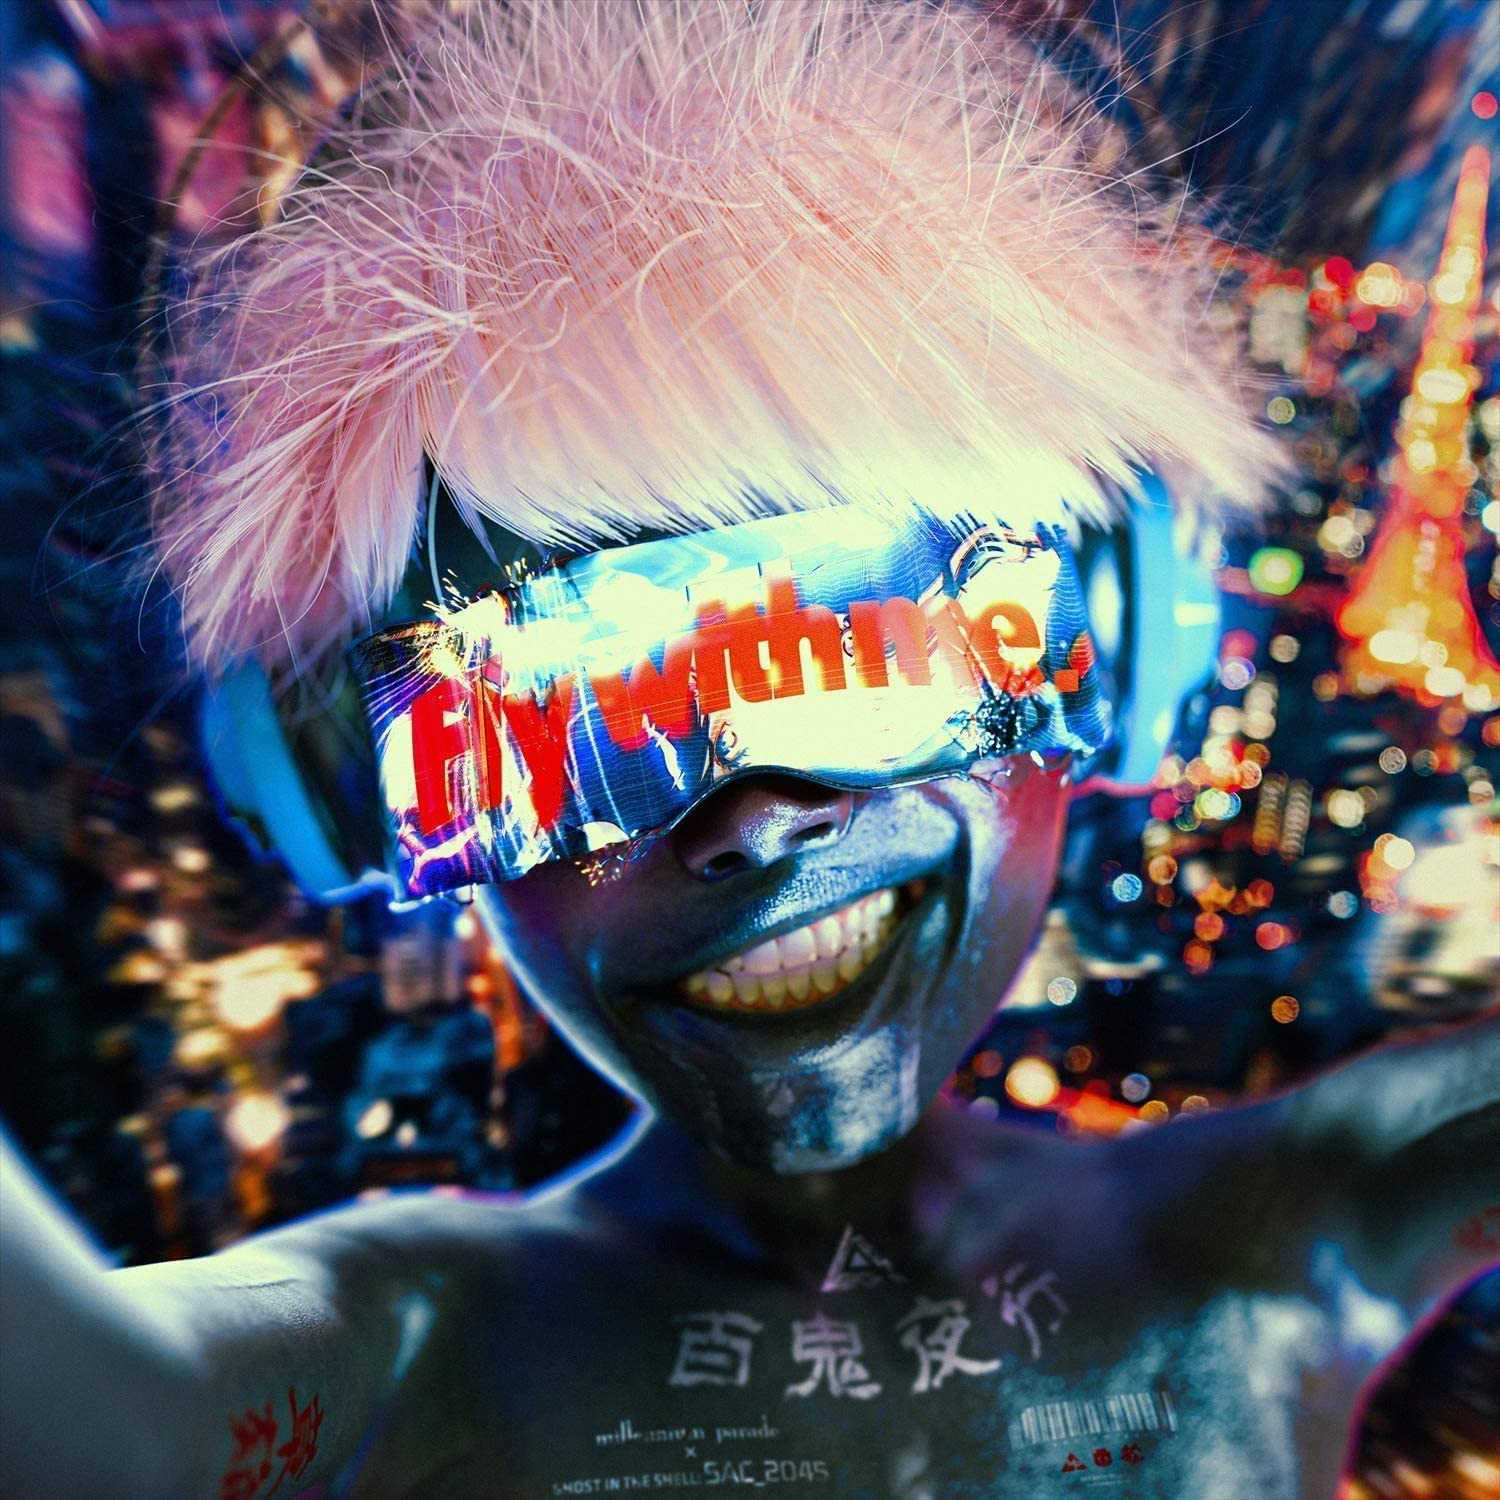 [Hi-Res]『攻殻機動隊 SAC_2045』主题歌「Fly with me」/millennium parade × ghost in the shell: SAC_2045[48kHz/24bit][FLAC]